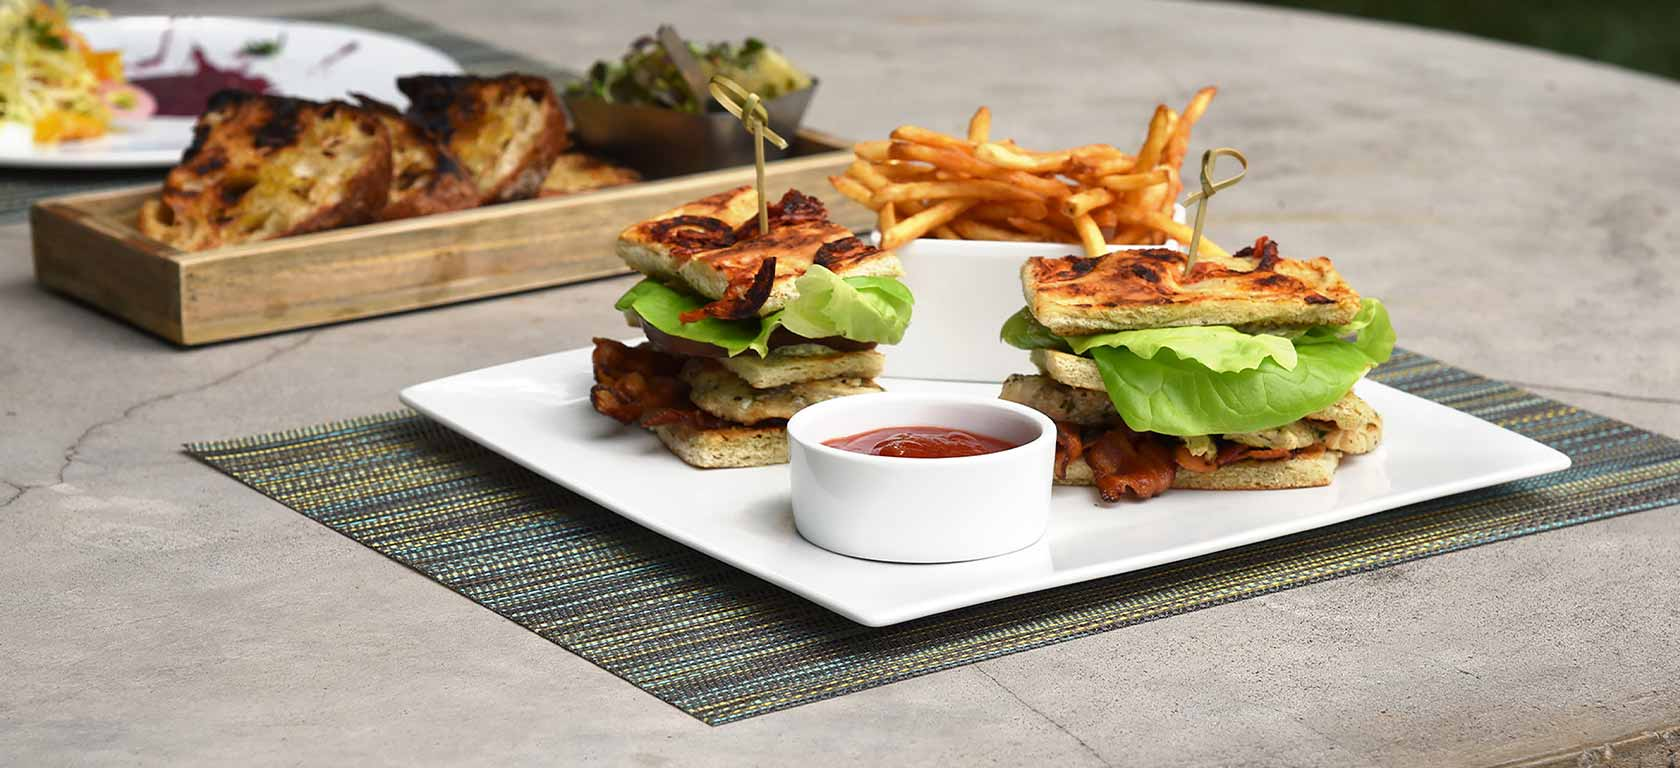 Sandwich and fries arranged on simplistic white ceramic plates.